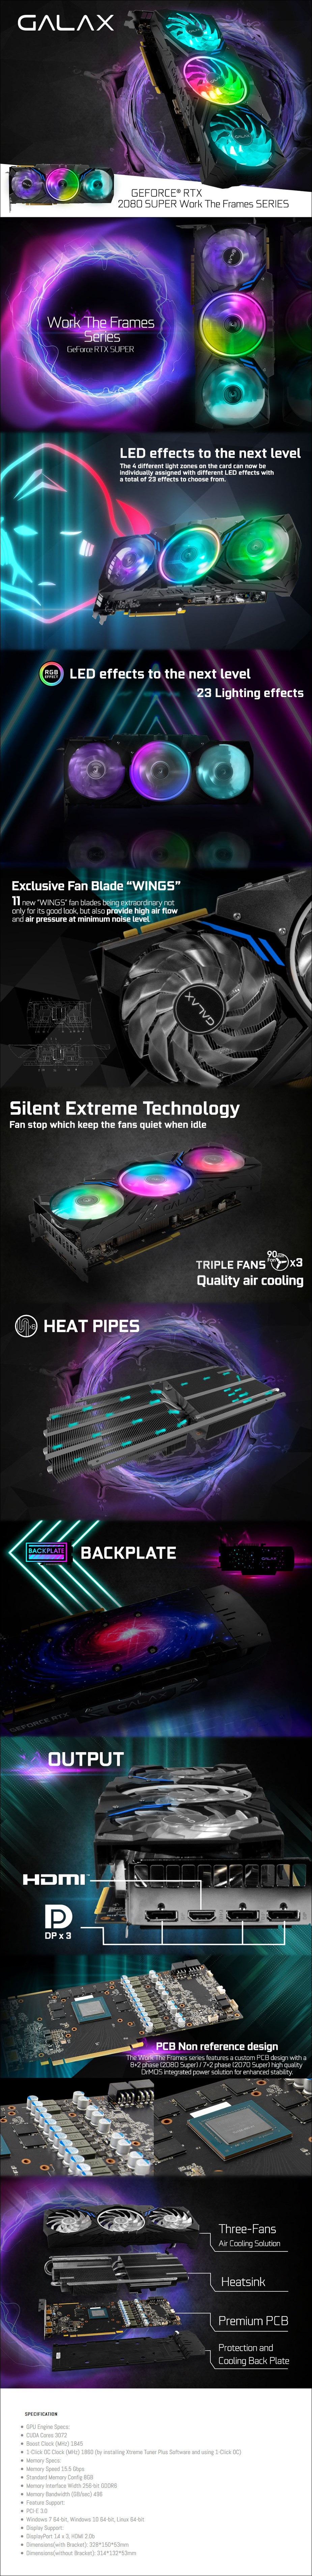 GALAX GeForce RTX 2080 SUPER Work The Frames 8GB Video Card - Overview 1